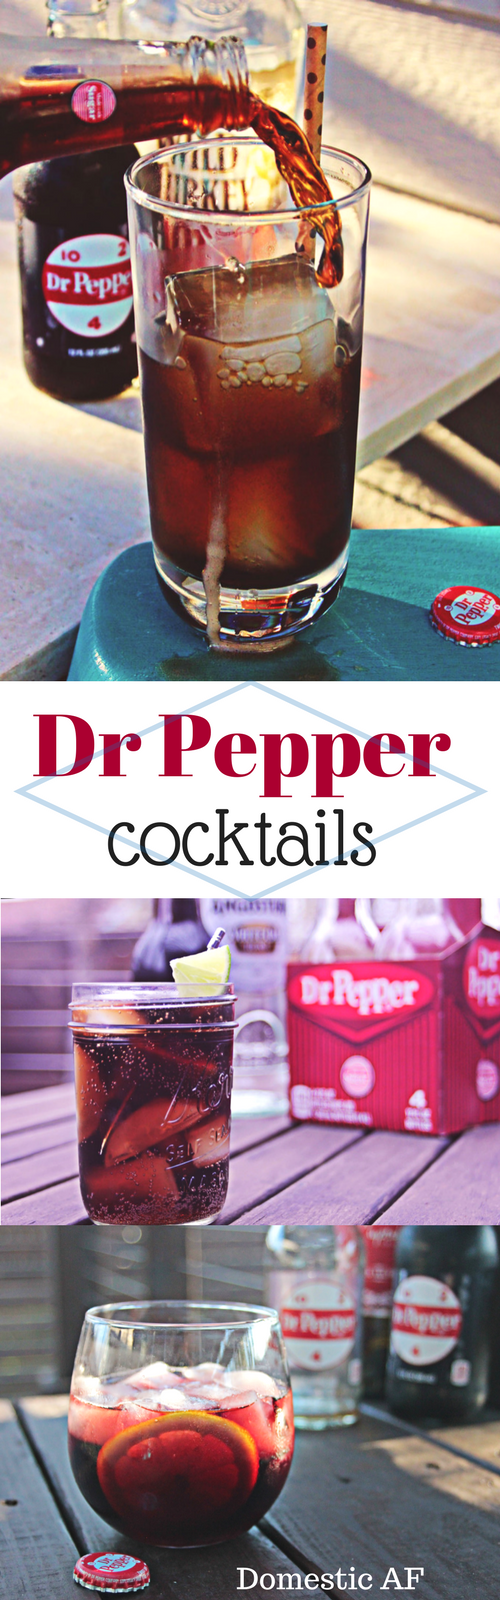 Three great cocktail recipes featuring Dr Pepper as the main (or only!) mixer. Dr Pepper versions of a Cuba Libre (rum & coke), Jack & Coke (with whiskey!), and Kalimoxto -- an amazing wine cocktail.